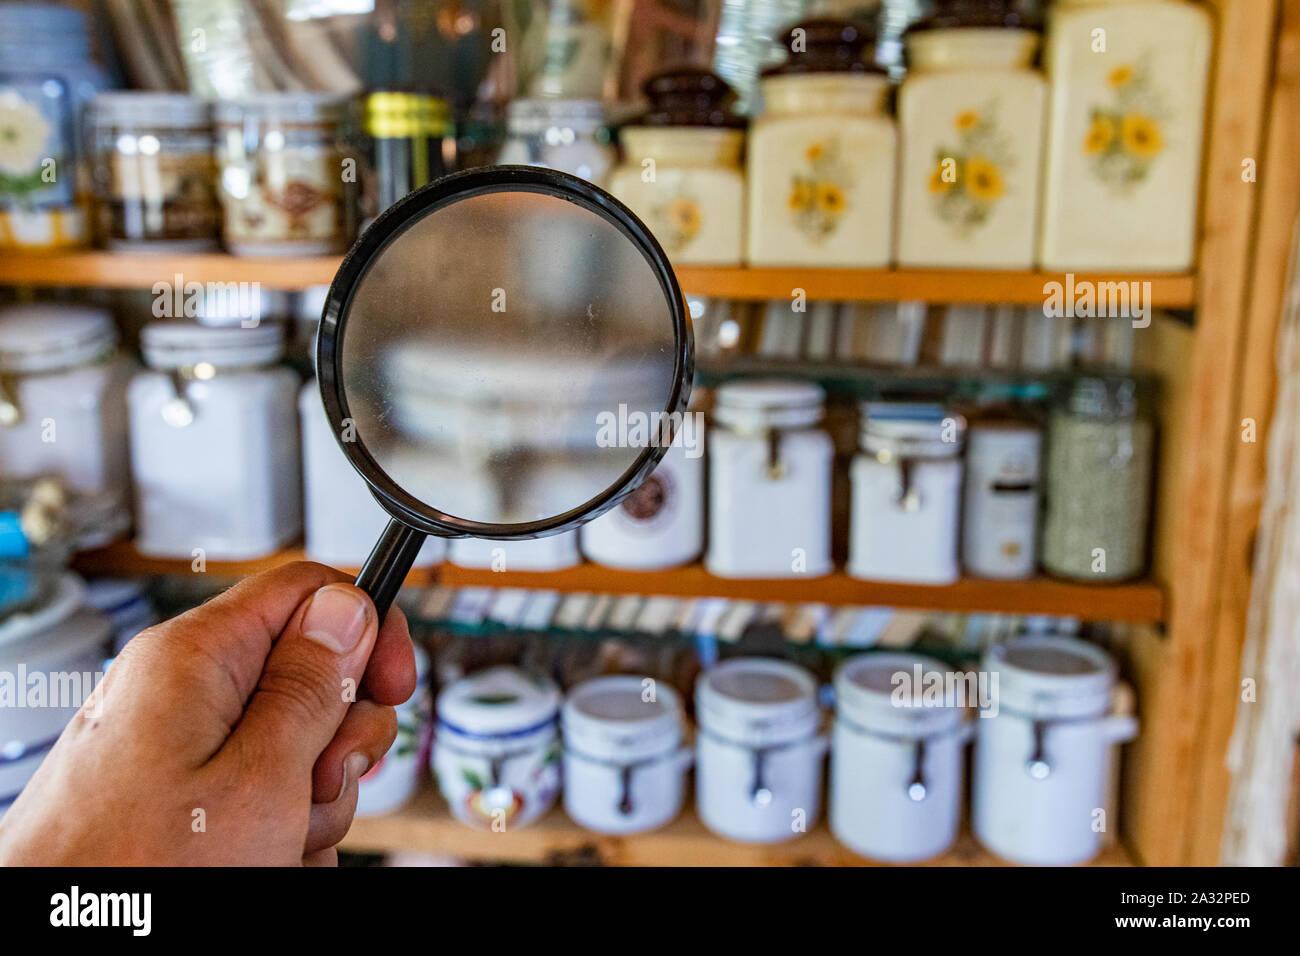 Looking For Signs Of Damp And Mold Inside The Kitchen Pantry With A Magnifying Glass Blurred Storage Jars Are Seen Displayed On Vintage Wooden Shelves Stock Photo Alamy